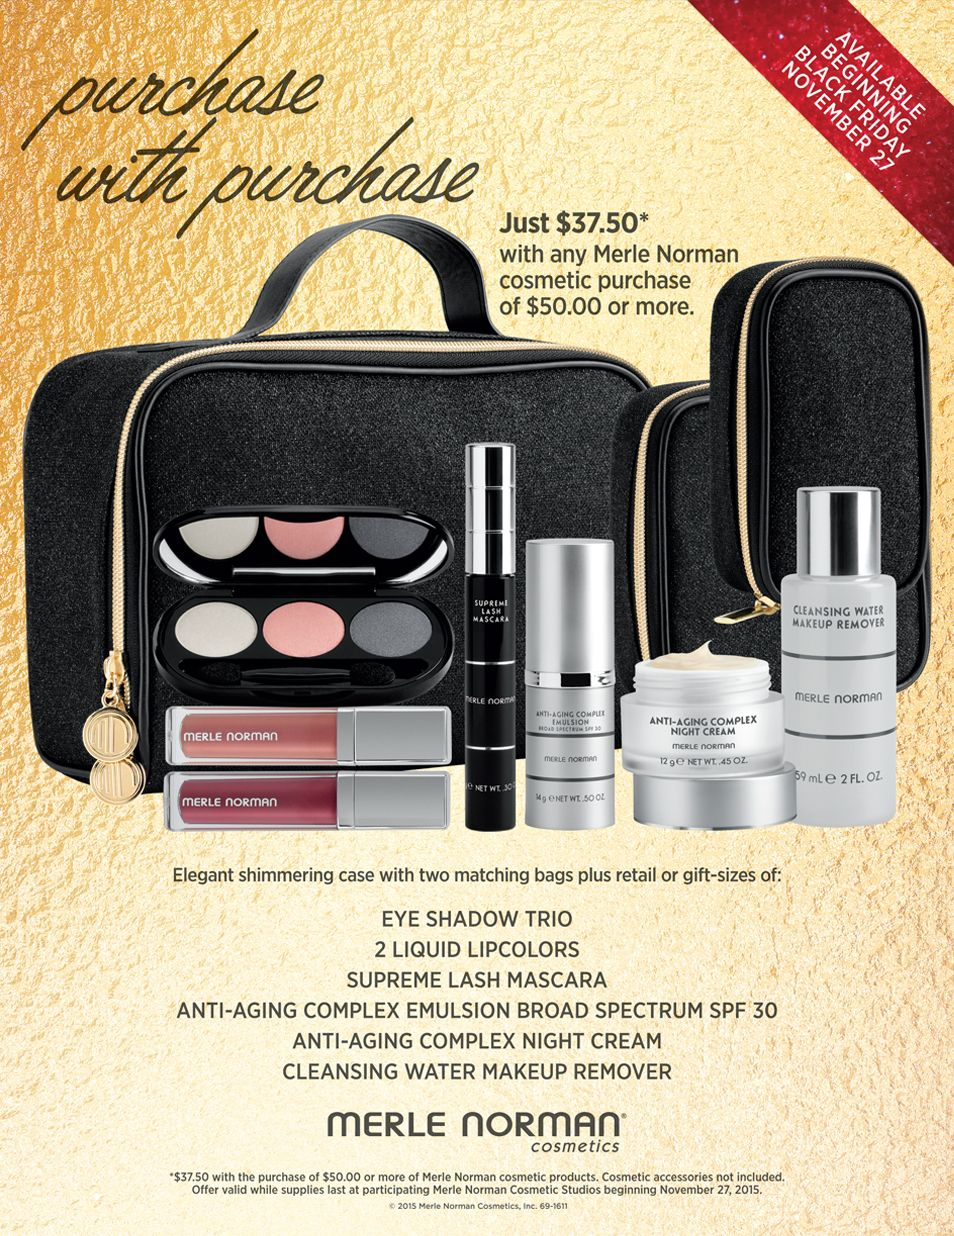 Merle Norman Purchase With Purchase Cleansing Water Makeup Remover Mascara Lashes Best Makeup Products